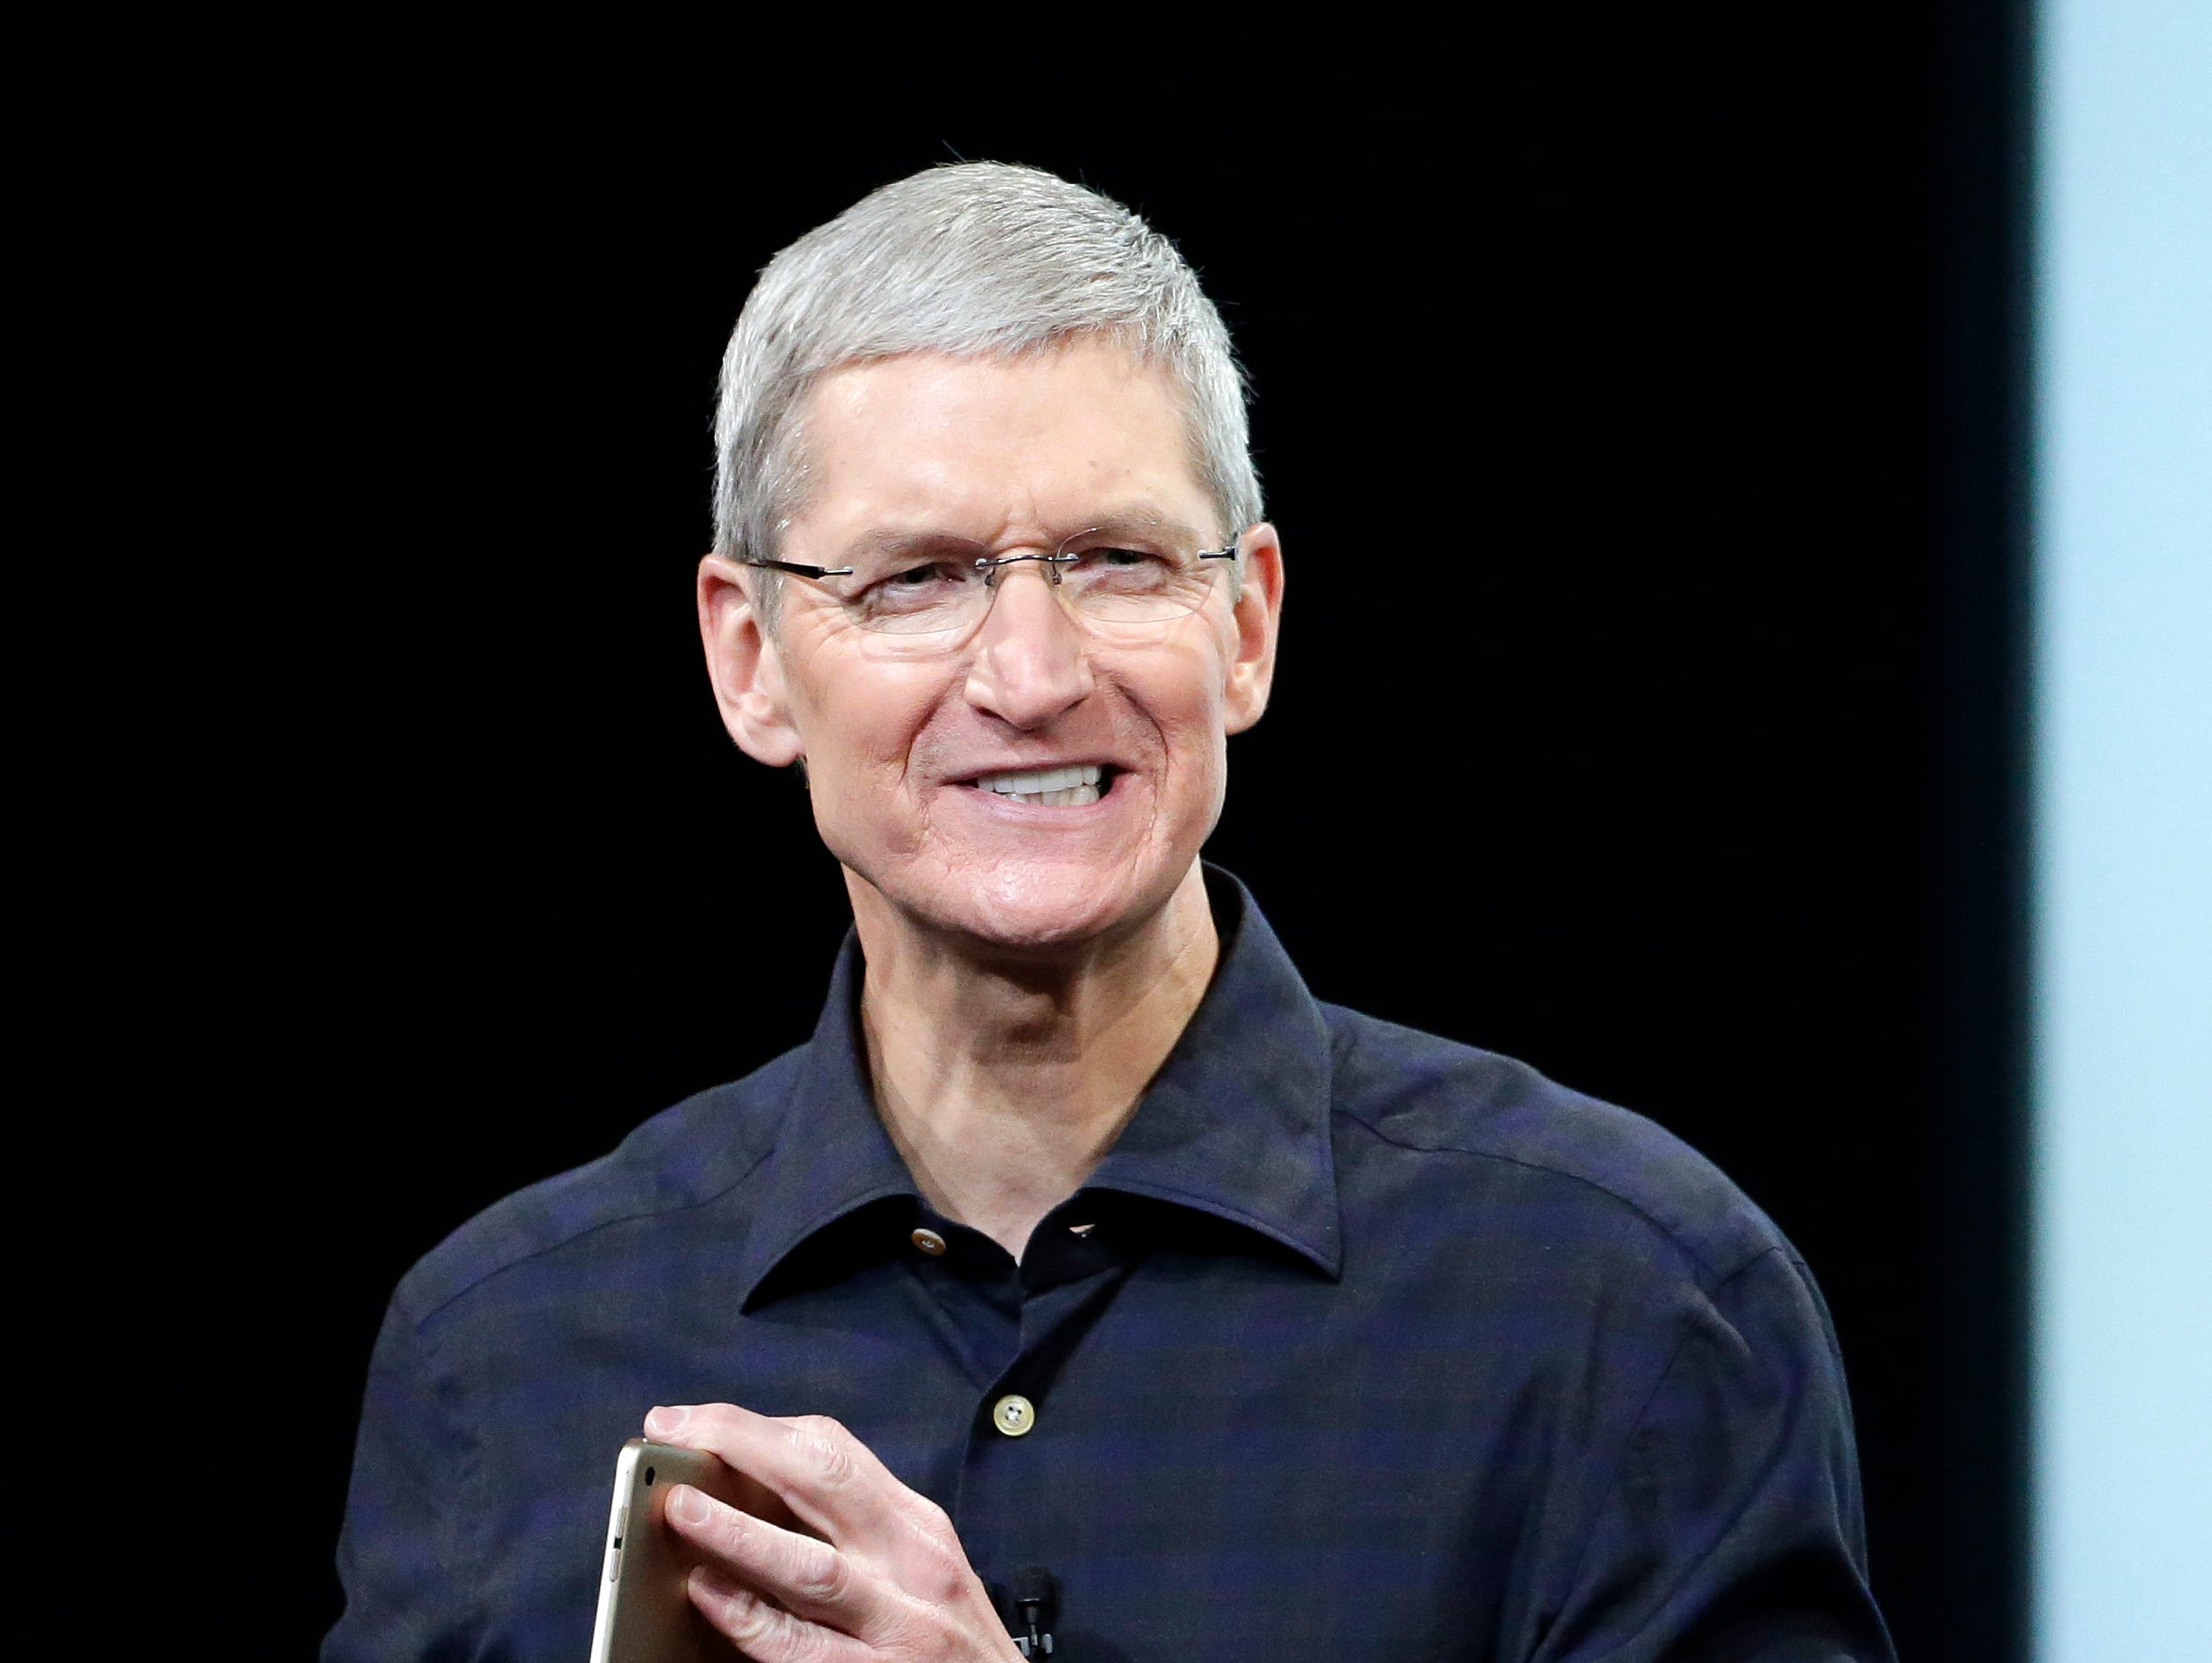 Apple CEO Tim Cook introduces the new Apple iPad Air 2 during an event at Apple headquarters on Oct. 16, 2014, in Cupertino, Calif.